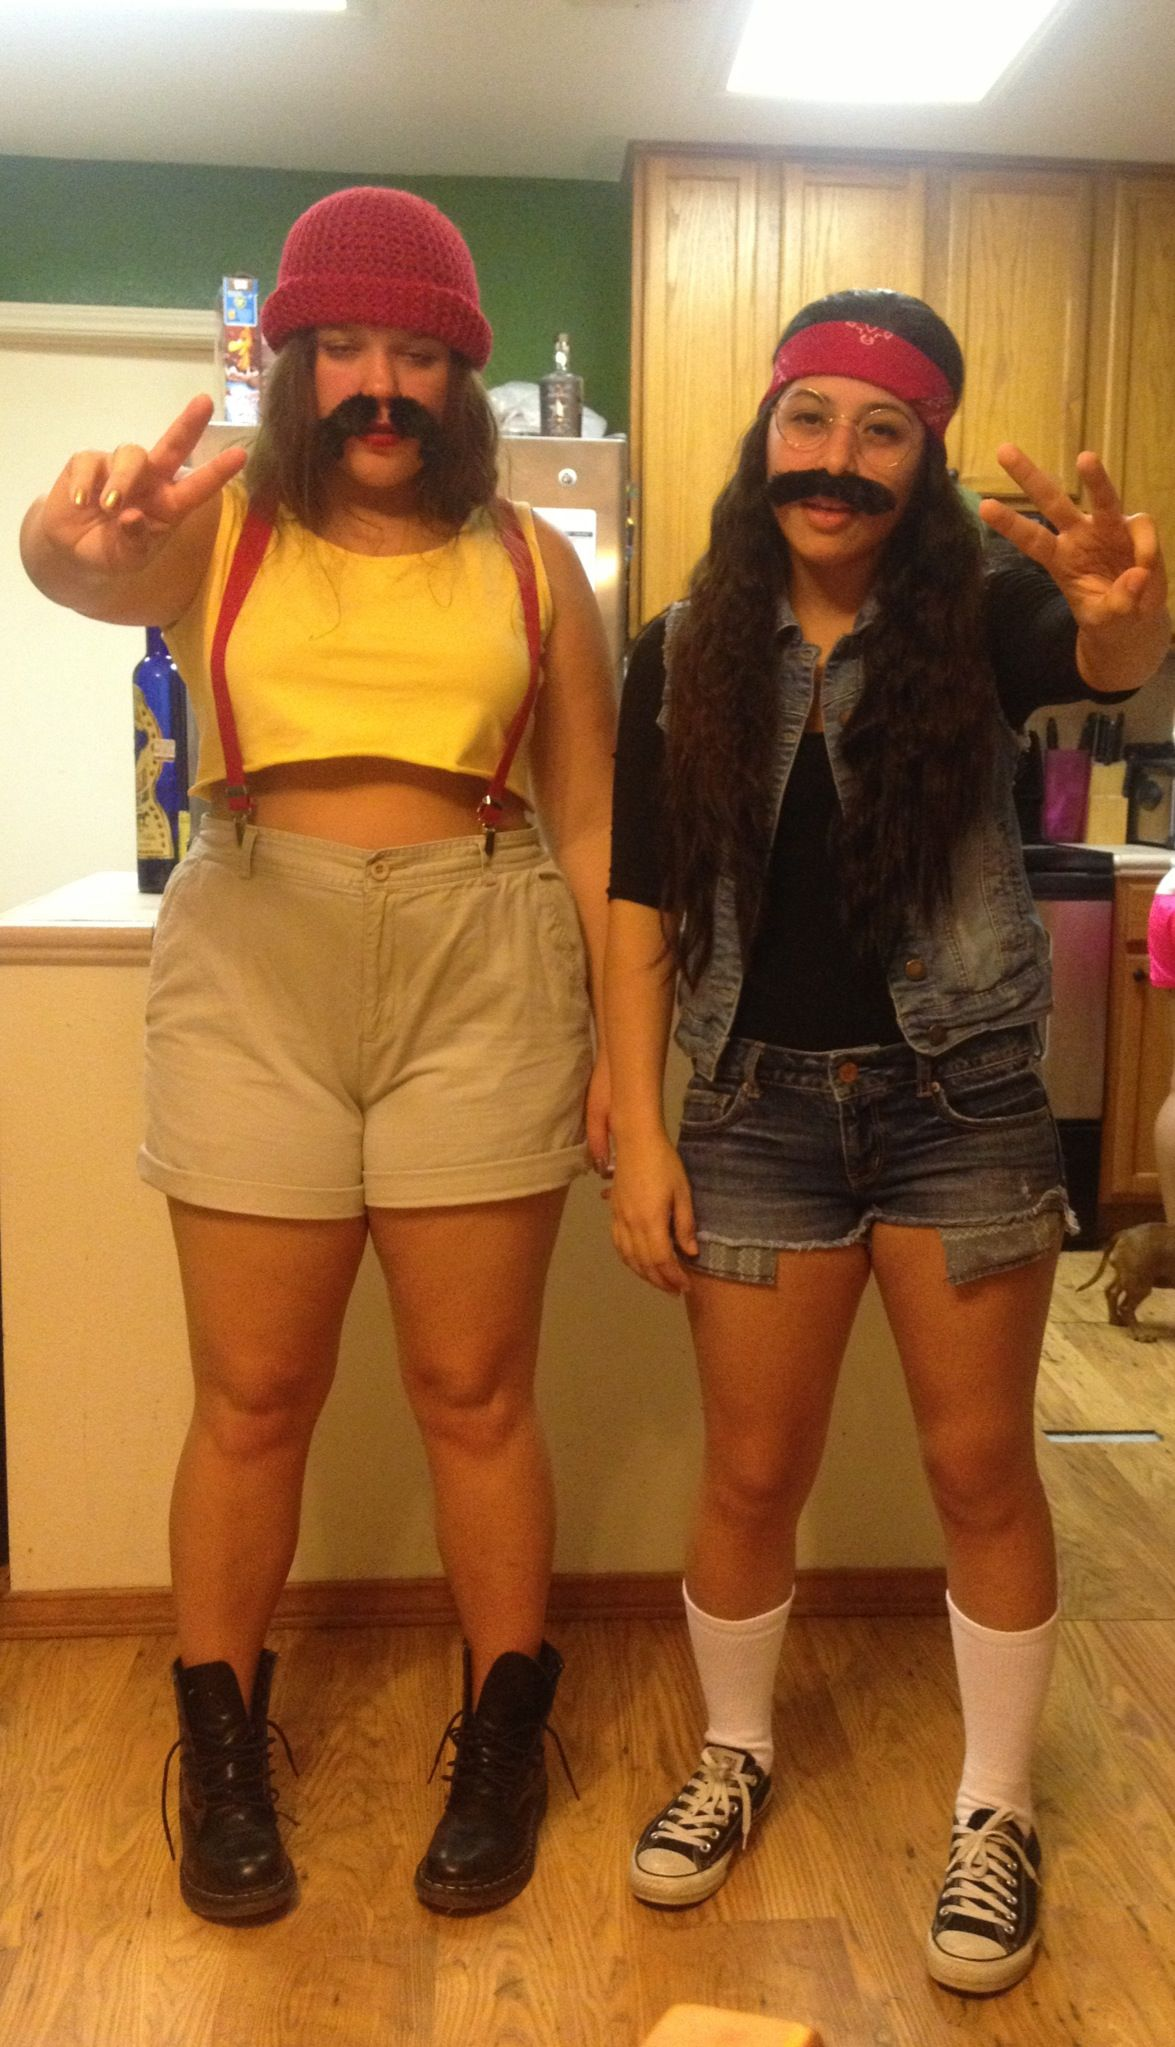 cheech and chong diy halloween costumes we could look wayyyyyy better than this ha ha